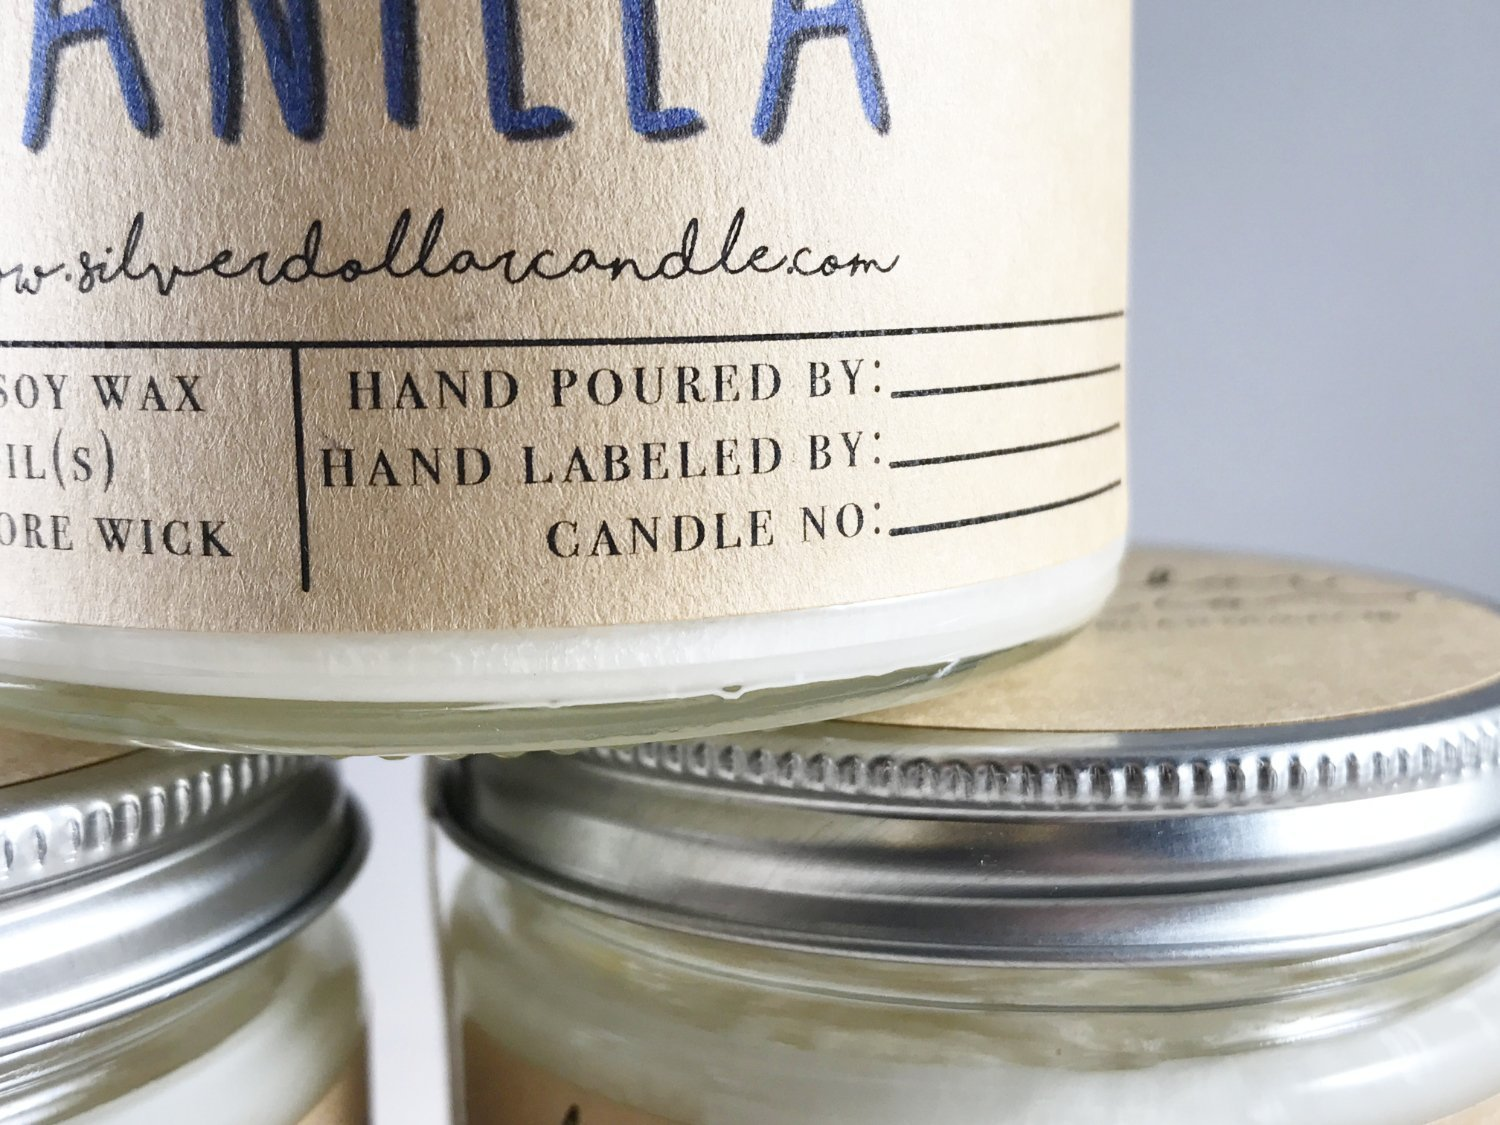 Personalized 8oz Handmade 100% Soy Wax Scented Candle by Silver Dollar Candle Co. by Silver Dollar Candle Co. (Image #6)